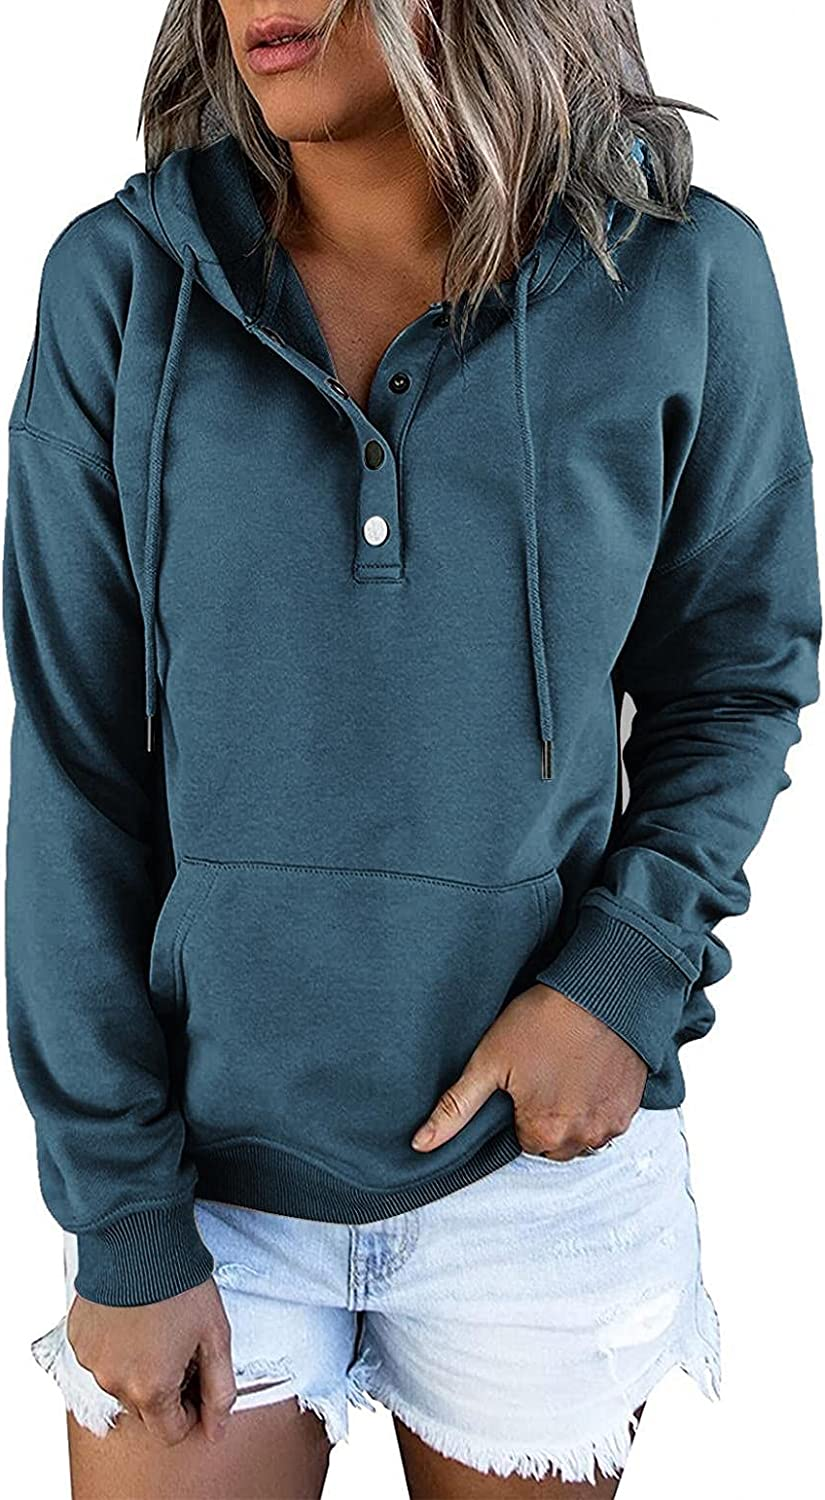 Womens Tops Dressy Casual,Women's Solid Color Hooded Fleece Solid Color Casual Sweaters